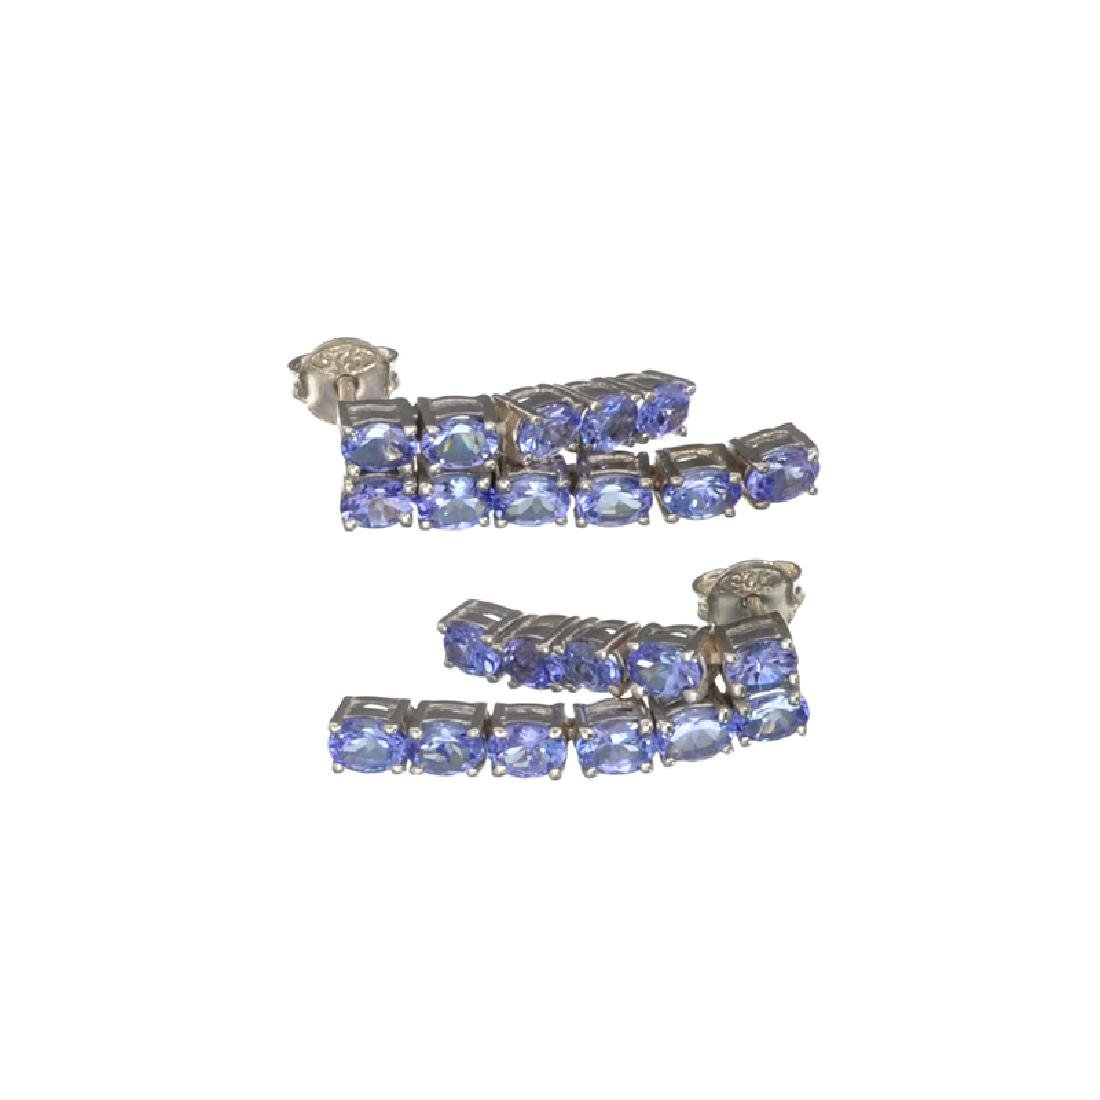 APP: 2.8k Fine Jewelry 3.66CT Oval Cut Tanzanite And